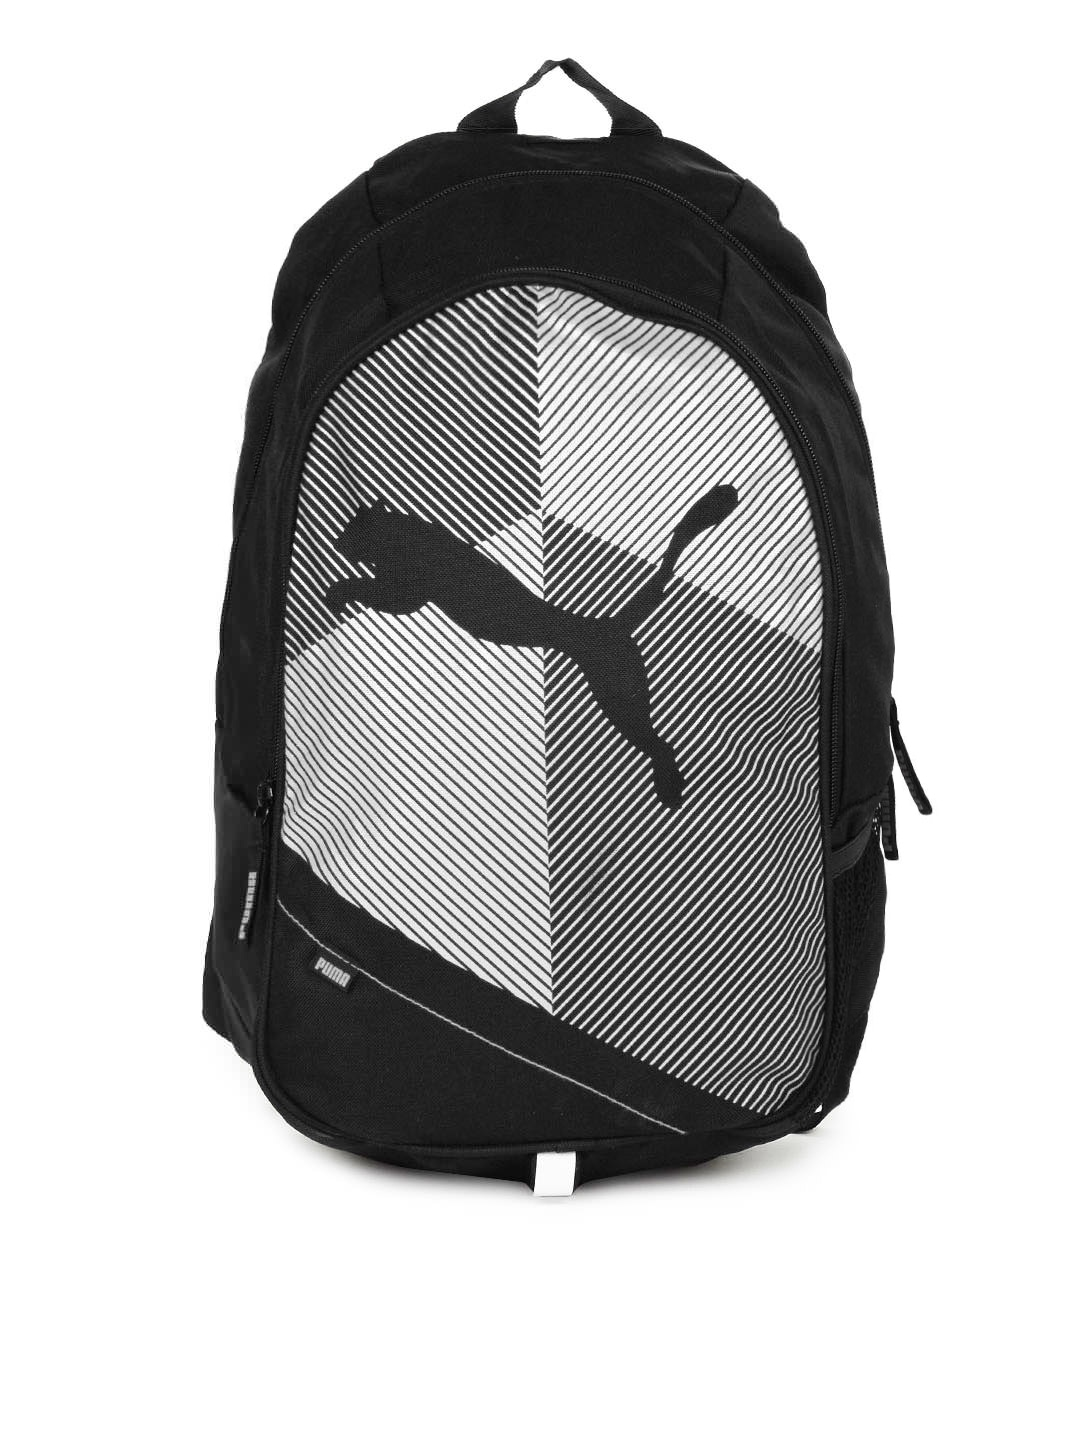 82508ffa92 Puma Italia Backpacks Sling Bags - Buy Puma Italia Backpacks Sling Bags  online in India